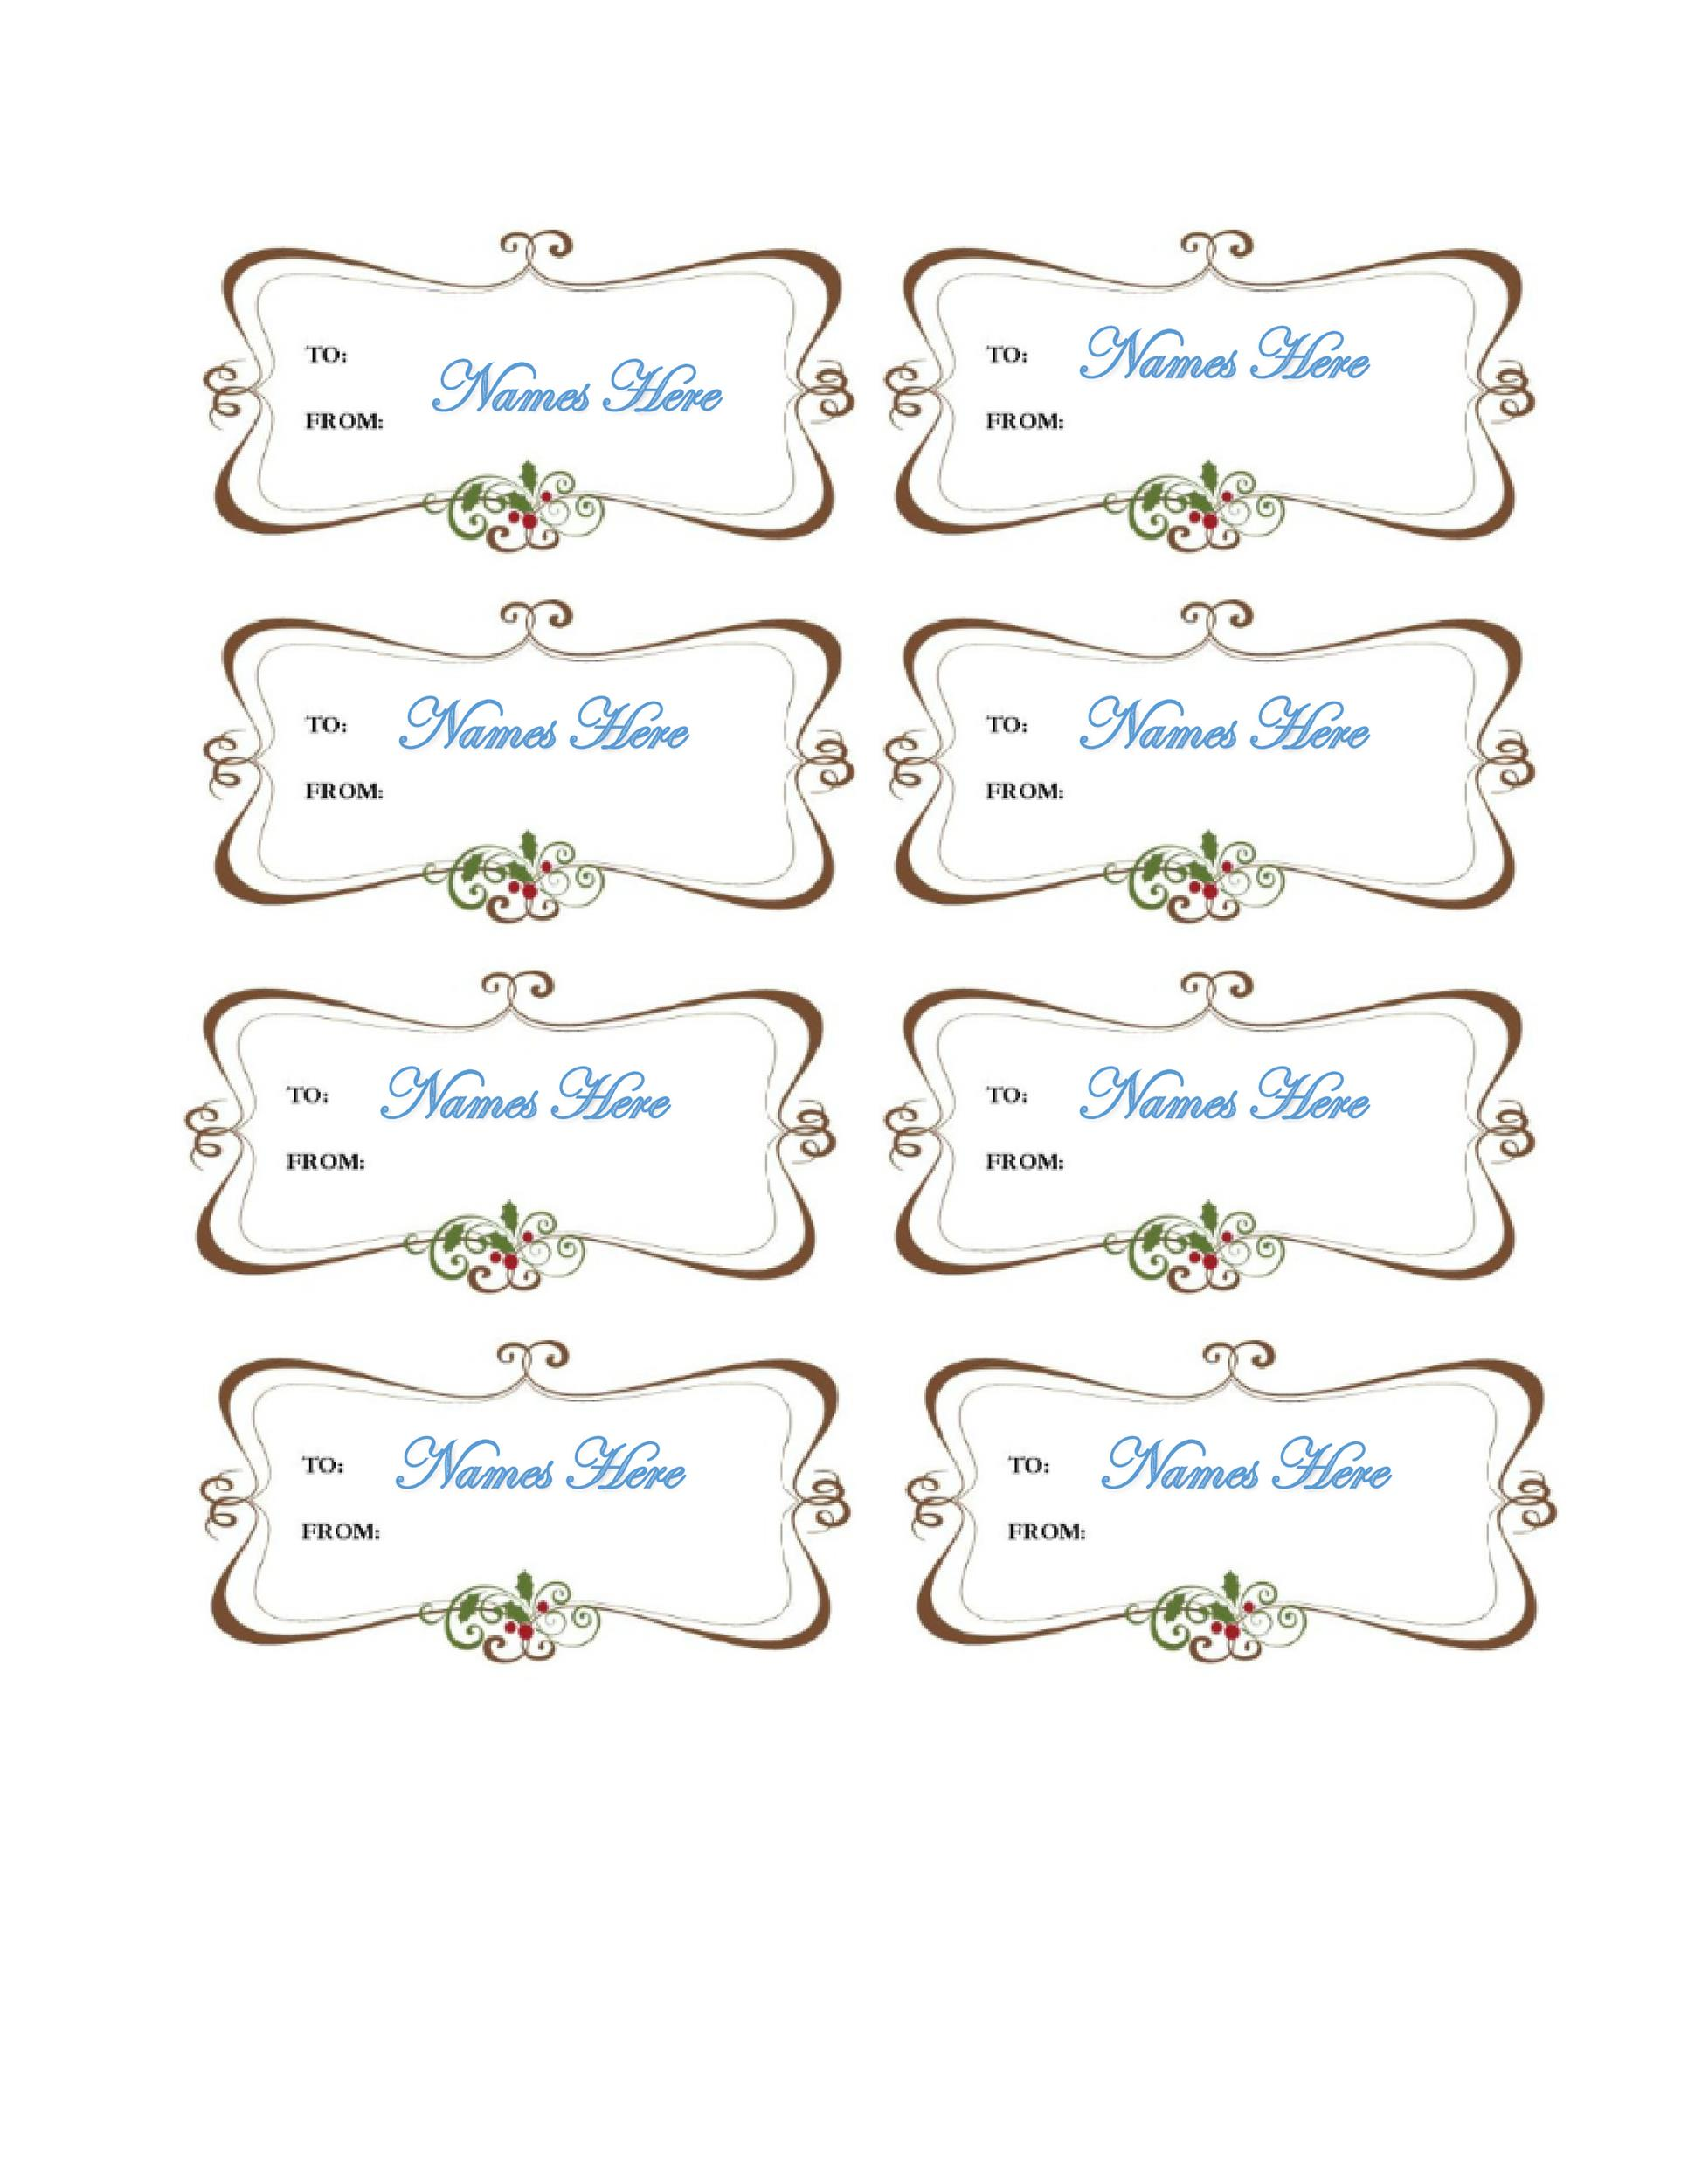 image regarding Free Printable Favor Tags referred to as 44 No cost Printable Reward Tag Templates ᐅ Template Lab